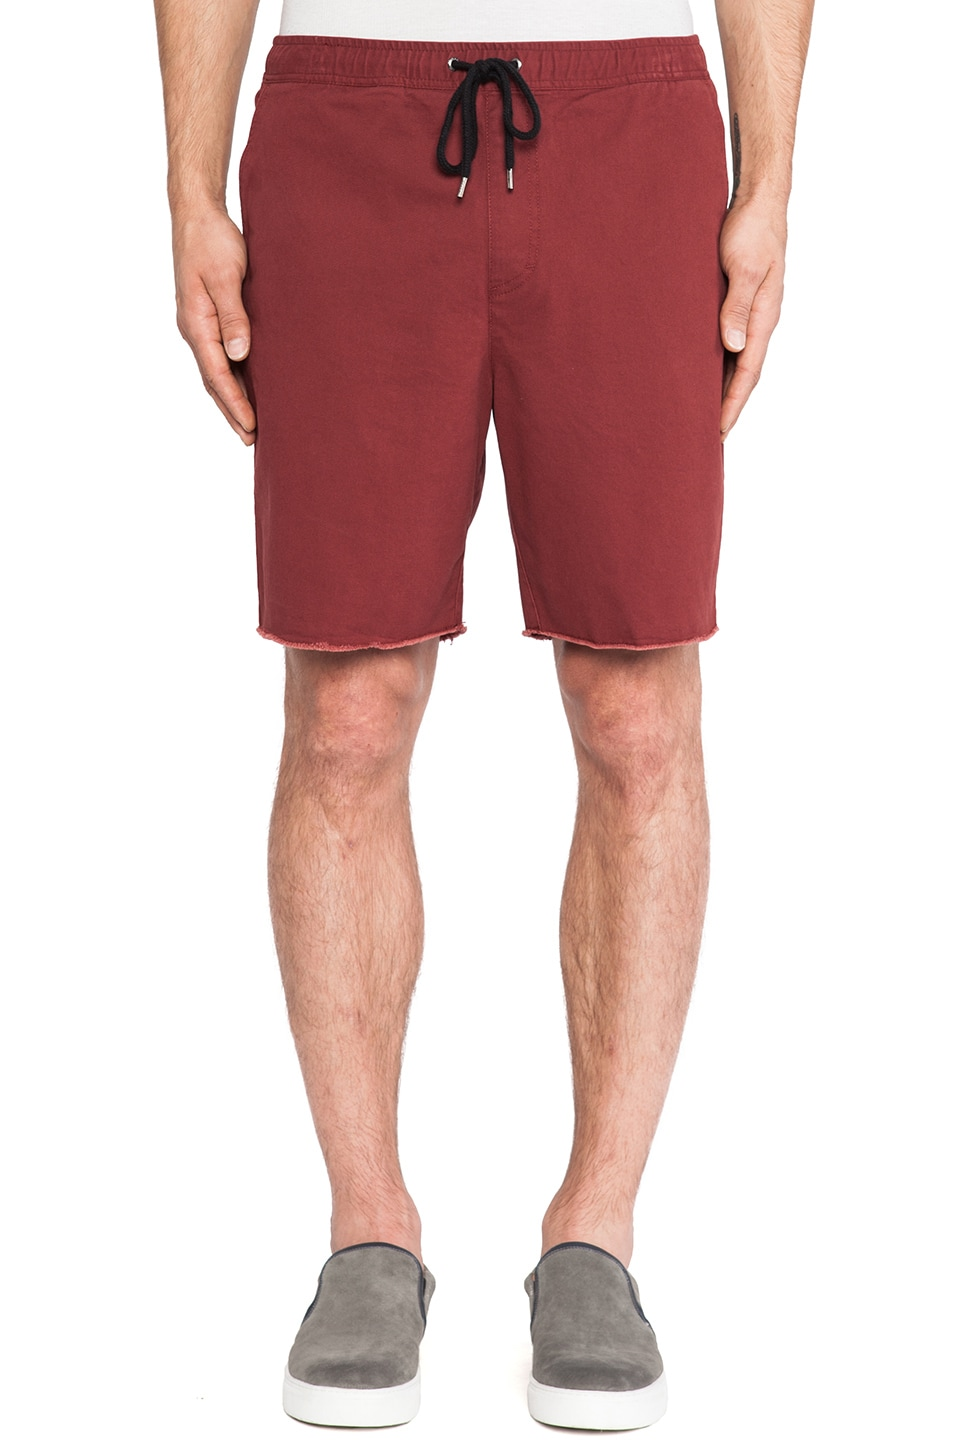 Brixton Madrid Short in Burgundy